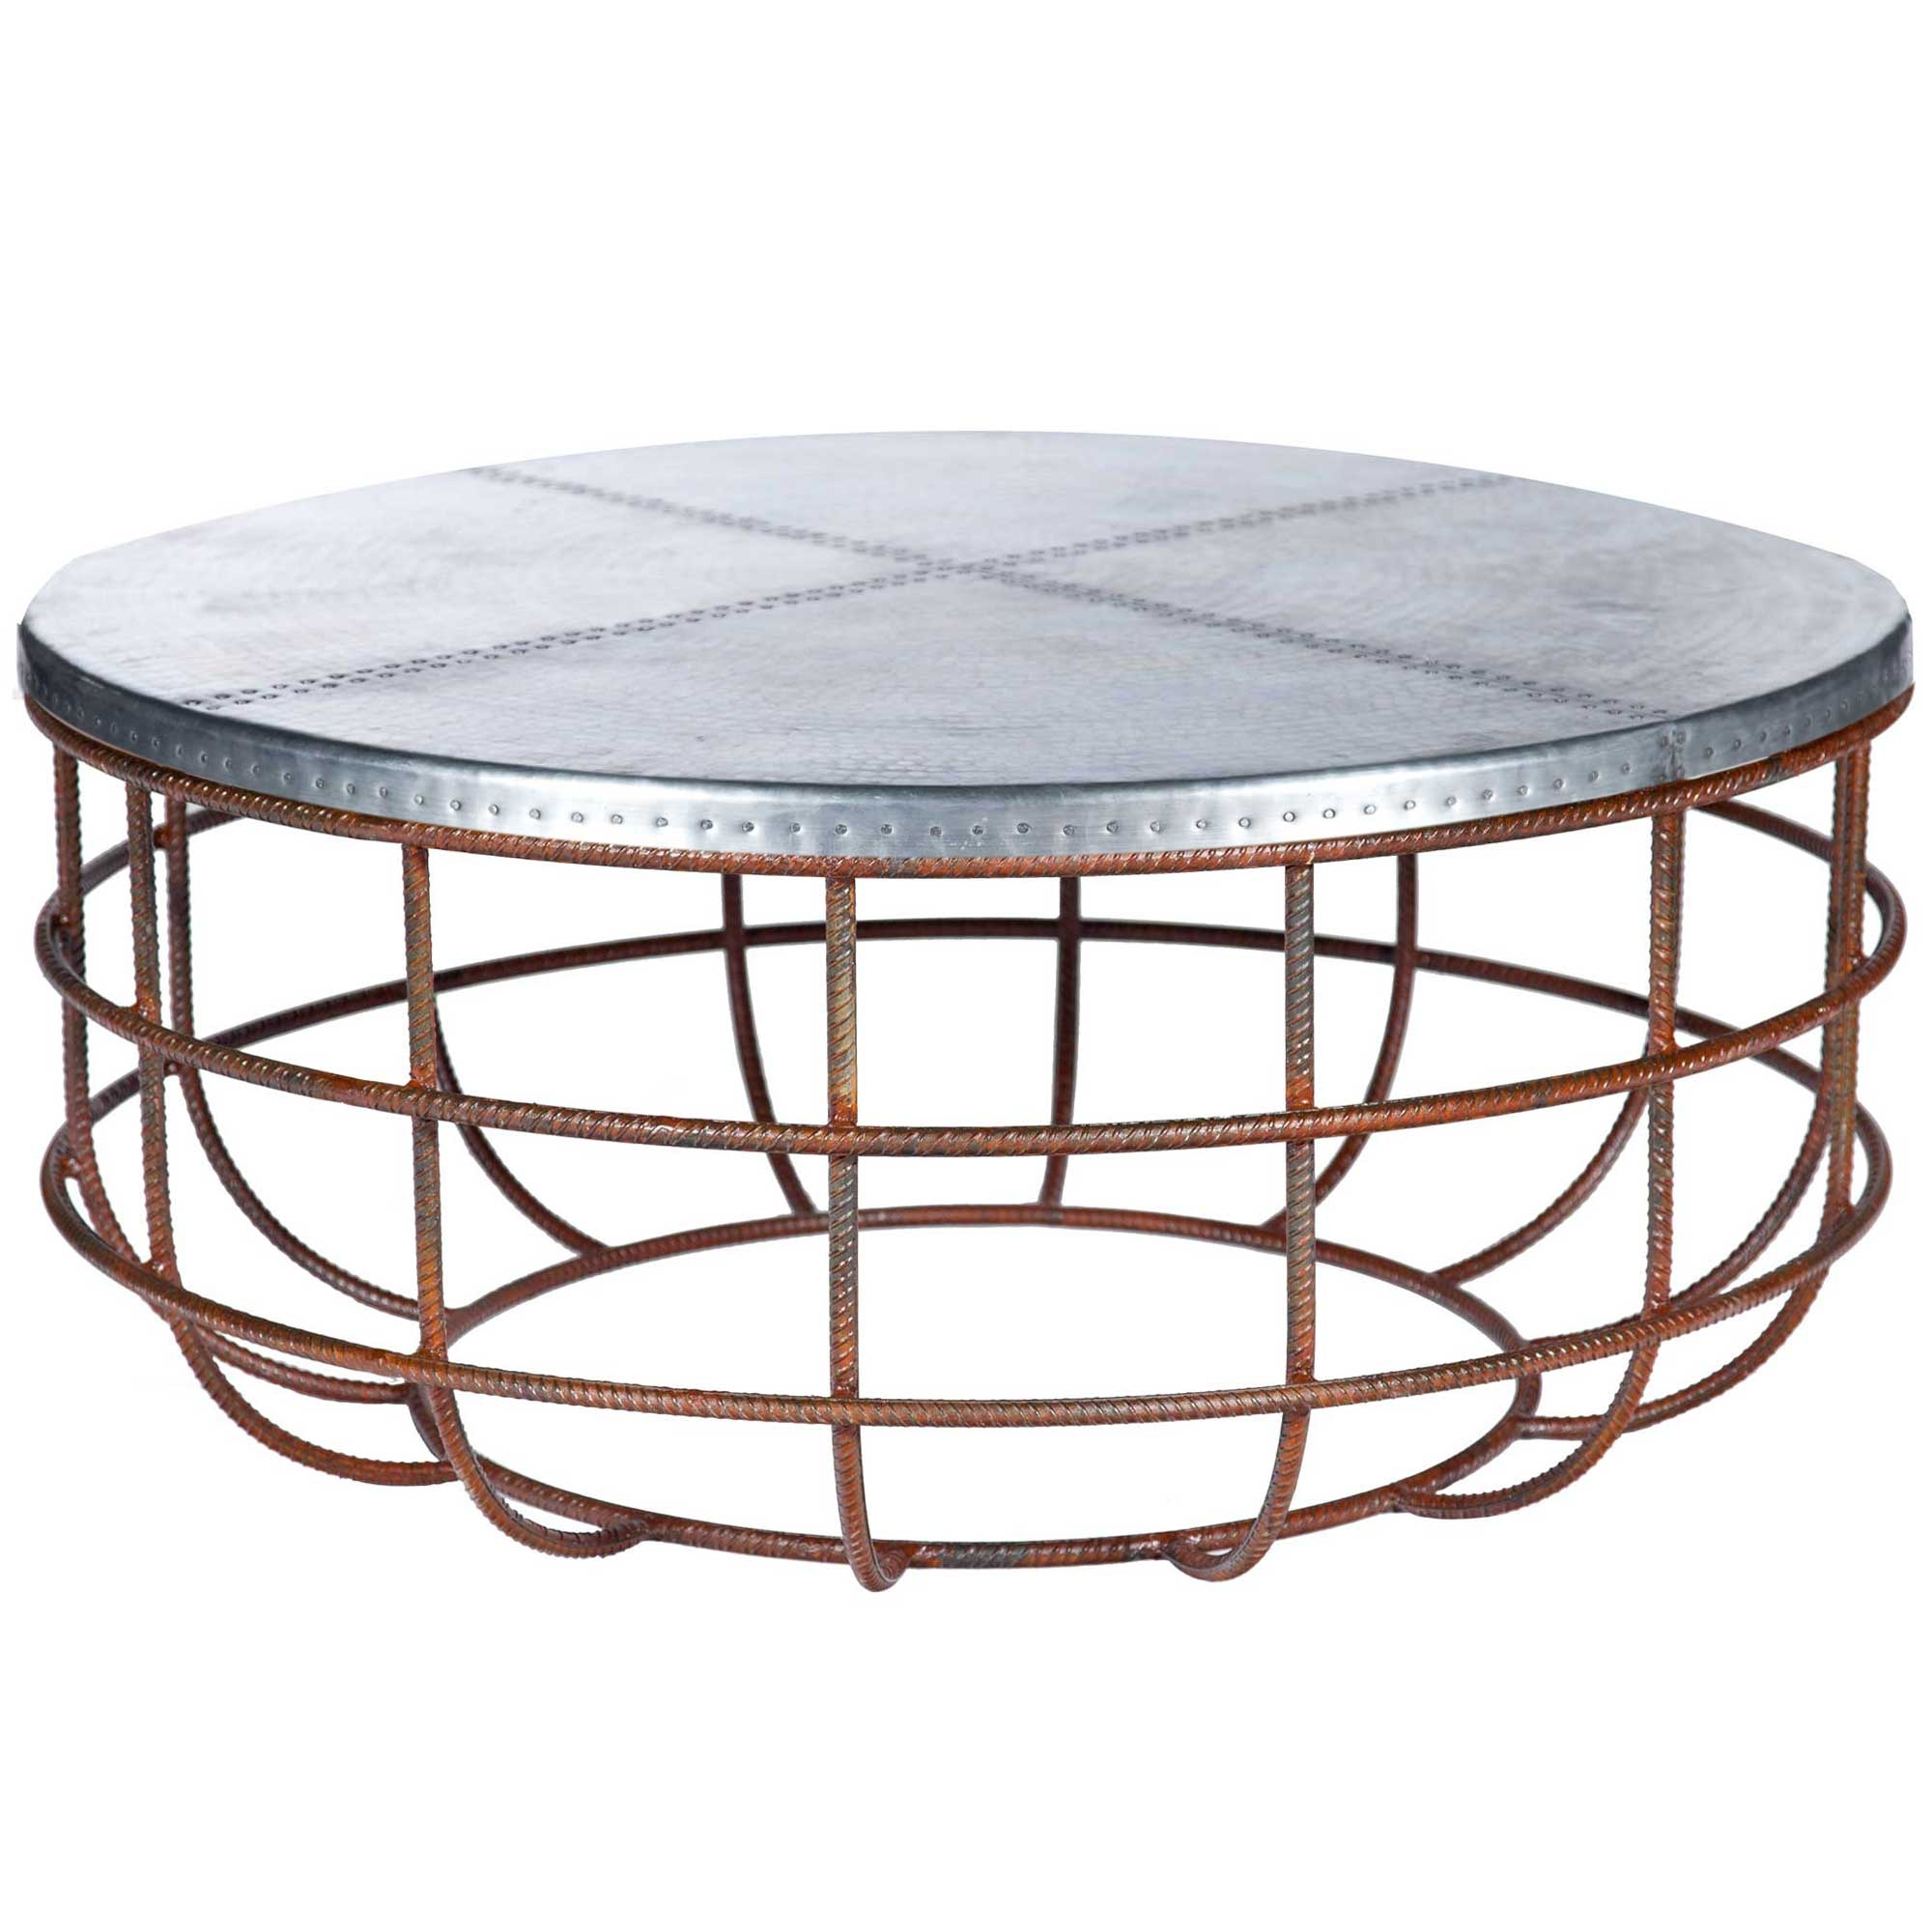 Swell Axel Iron Coffee Table With Round Hammered Zinc Top Gamerscity Chair Design For Home Gamerscityorg